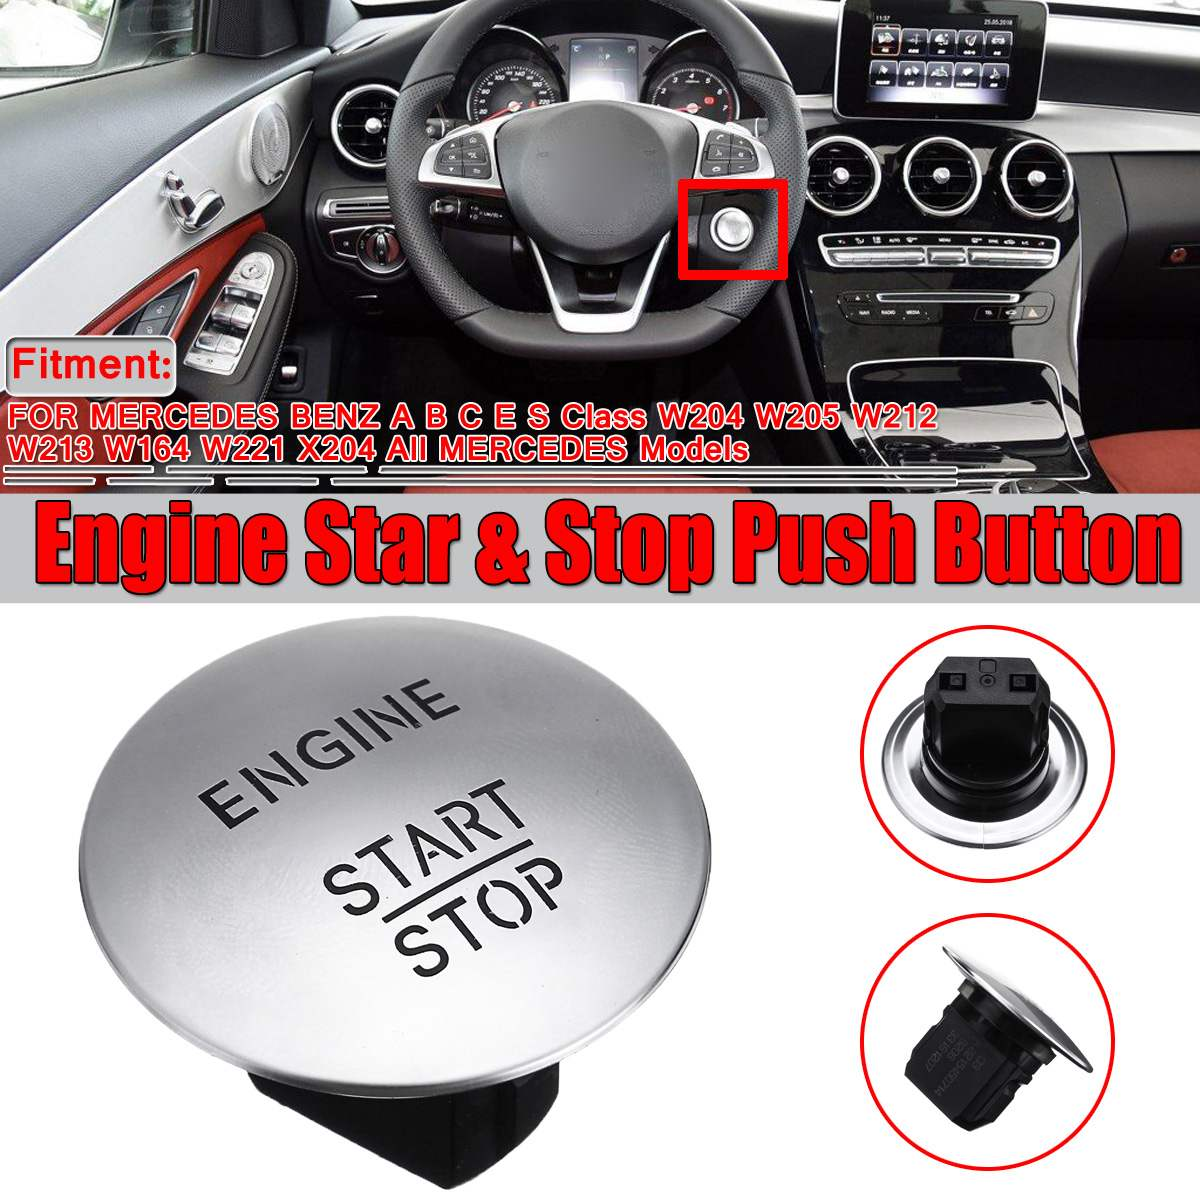 New Silver/Red Car Engine Start Stop Push Button Switch Keyless For <font><b>Mercedes</b></font> For Benz Model W164 W205 <font><b>W212</b></font> W213 W164 W221 X204 image